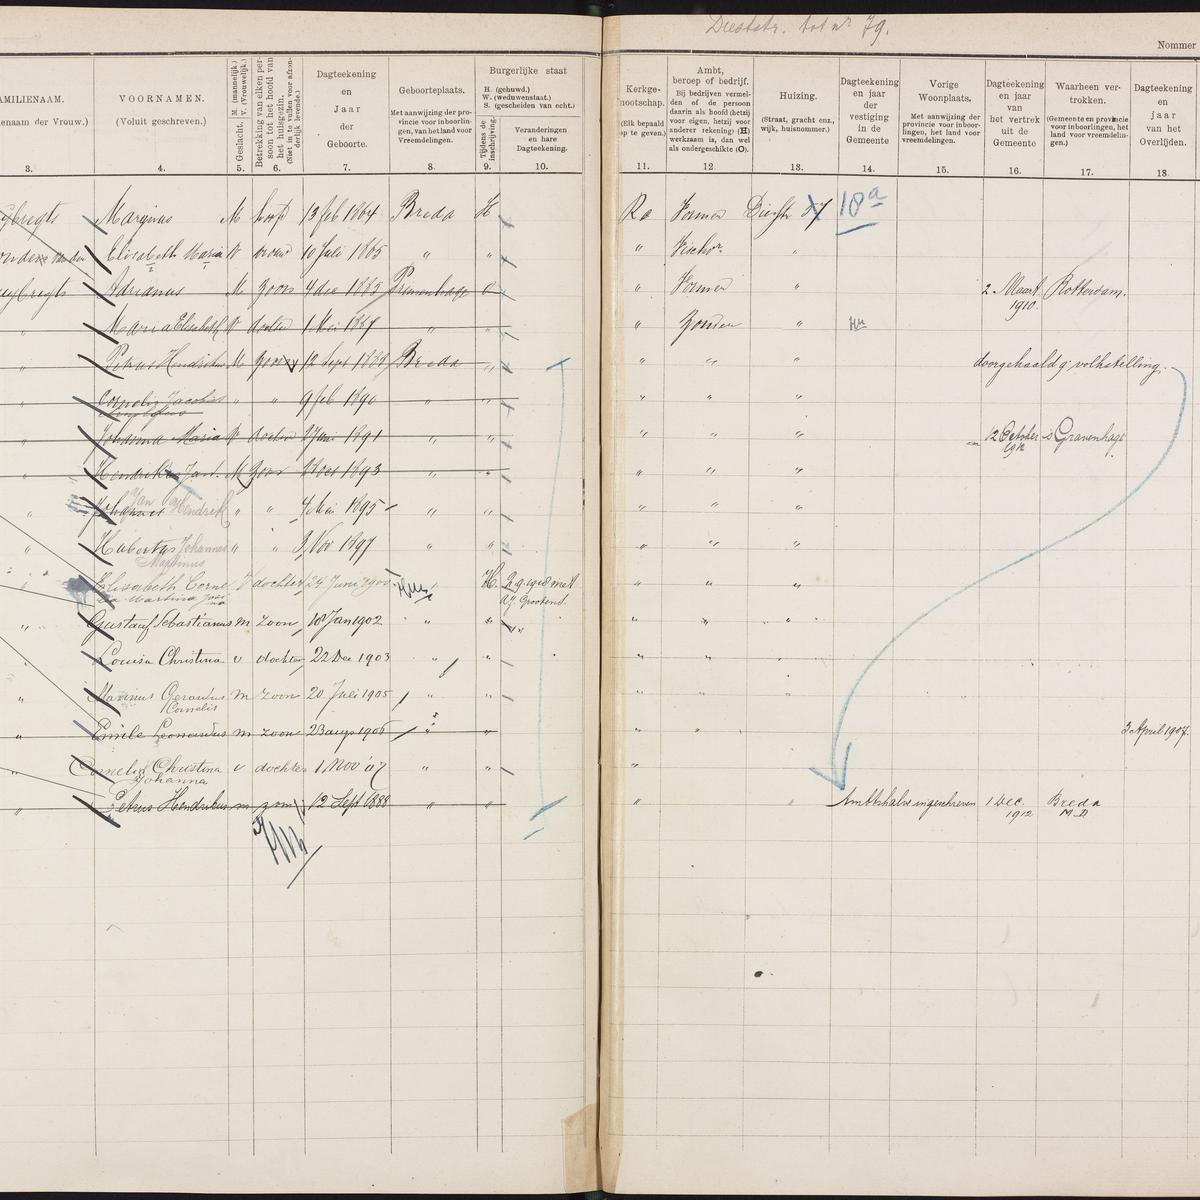 Population registry, Breda, 1900-1920, part 05, sheet 161